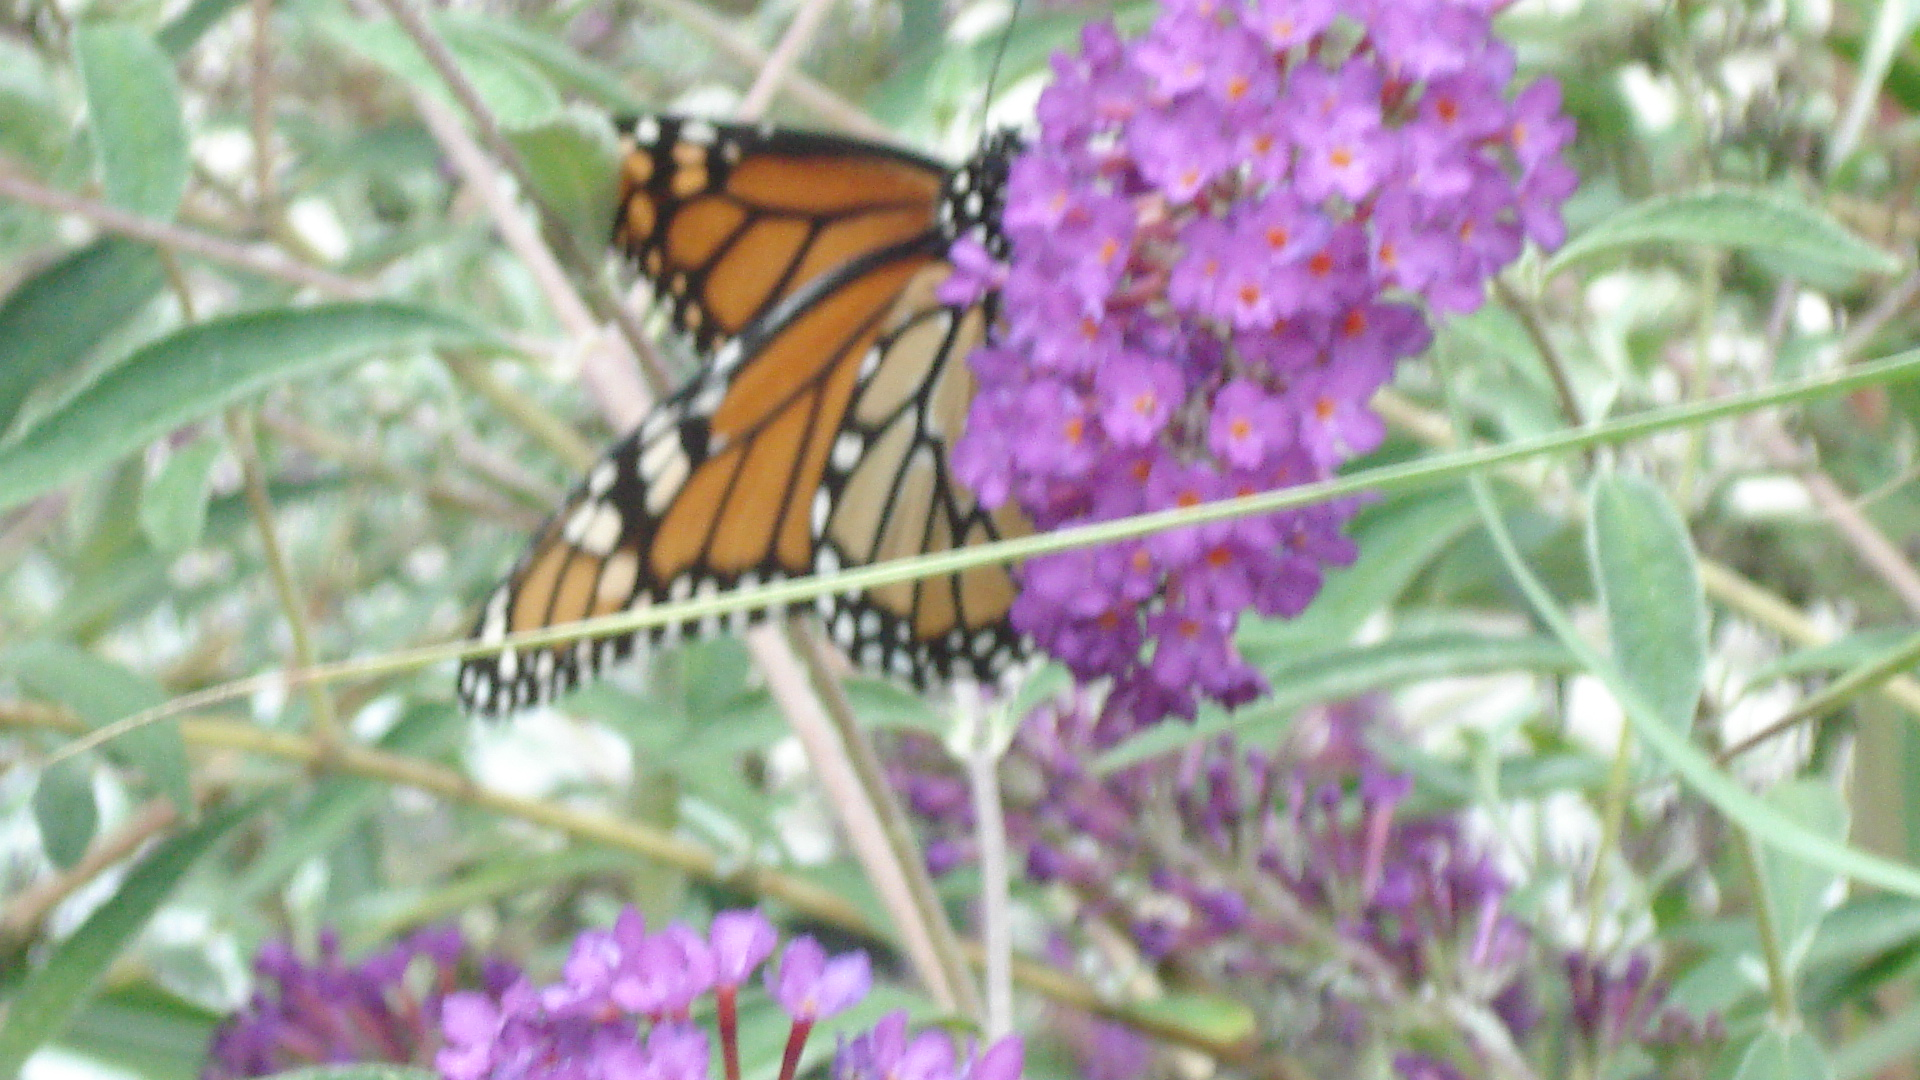 A Butterfly Rests on the Butterfly Bush